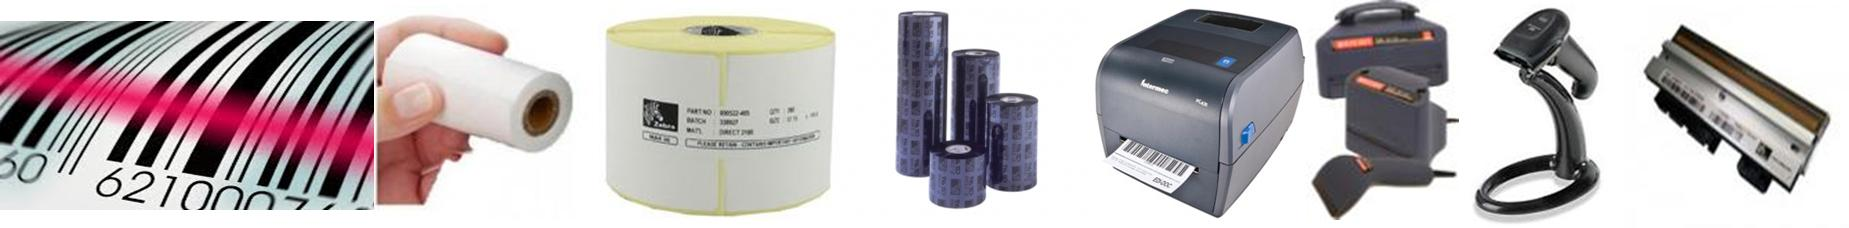 Zebra Labels, Zebra Ribbons, Label Printers, Bar Code Readers